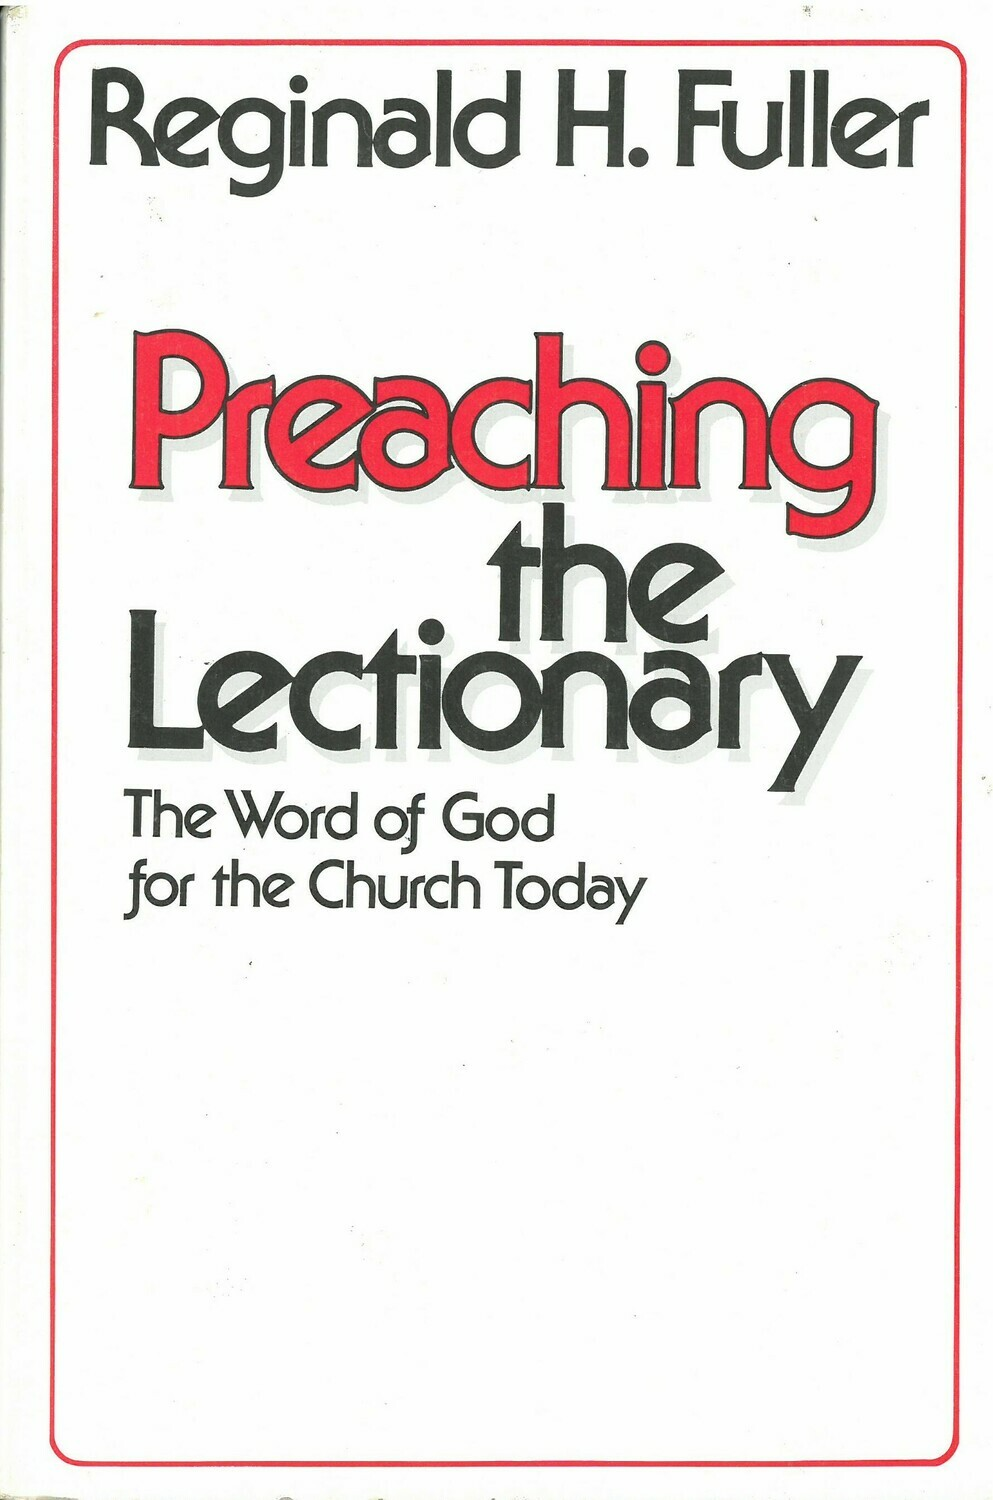 Preaching the Lectionary: The Word of God for the Church Today